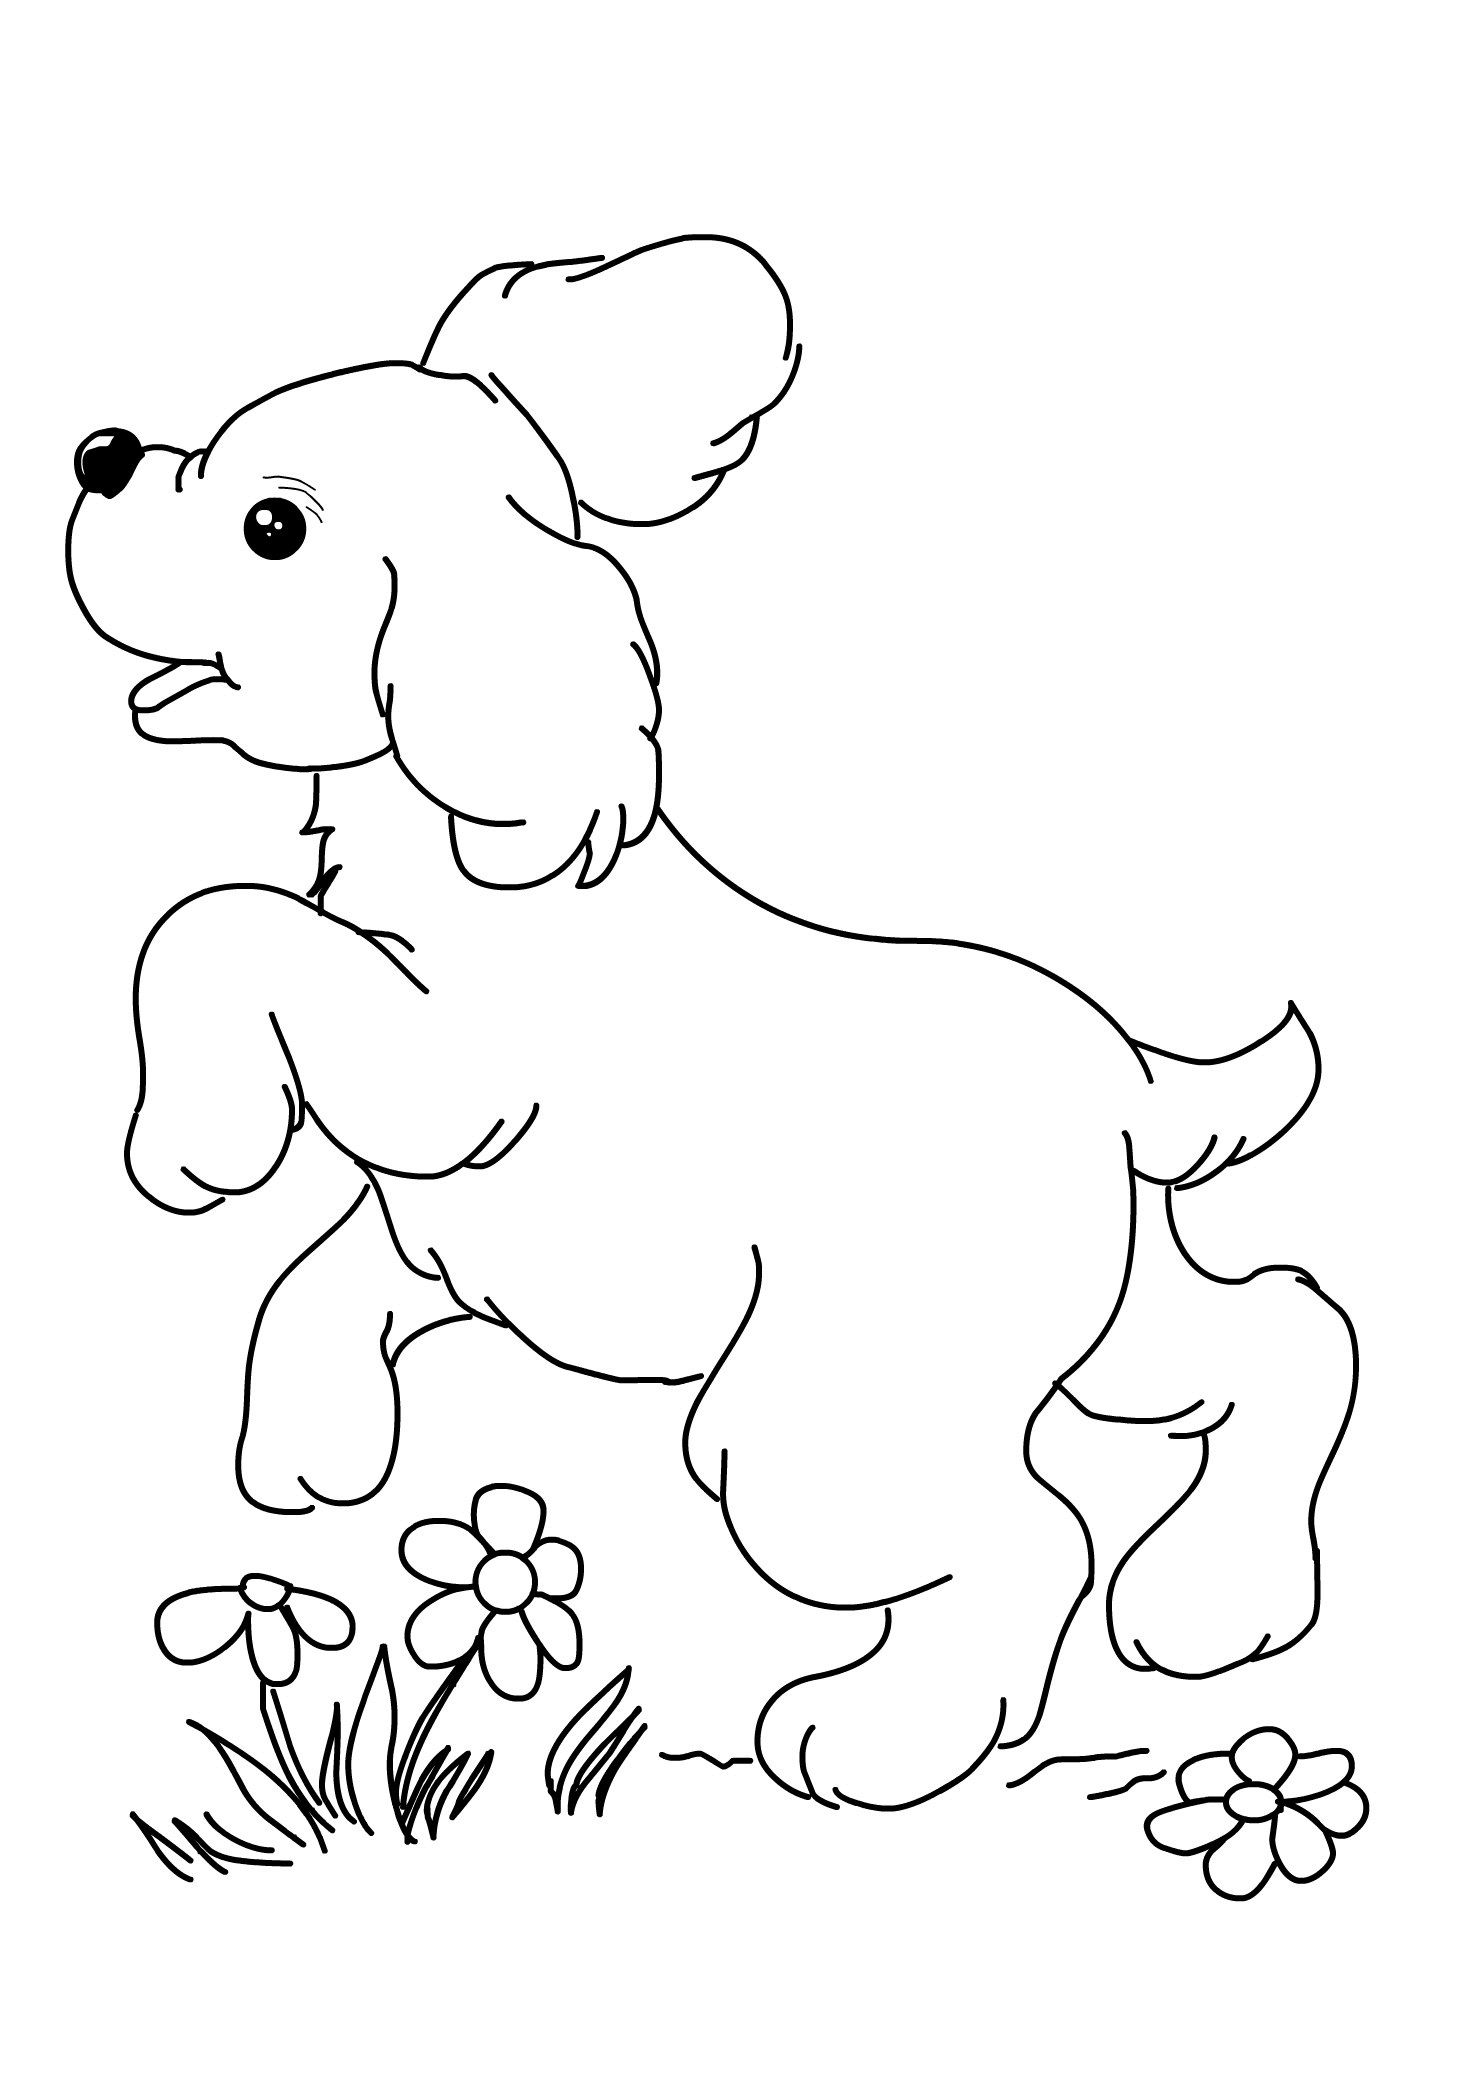 Cute Puppy Printable Dog Coloring Pages - Print Color Craft